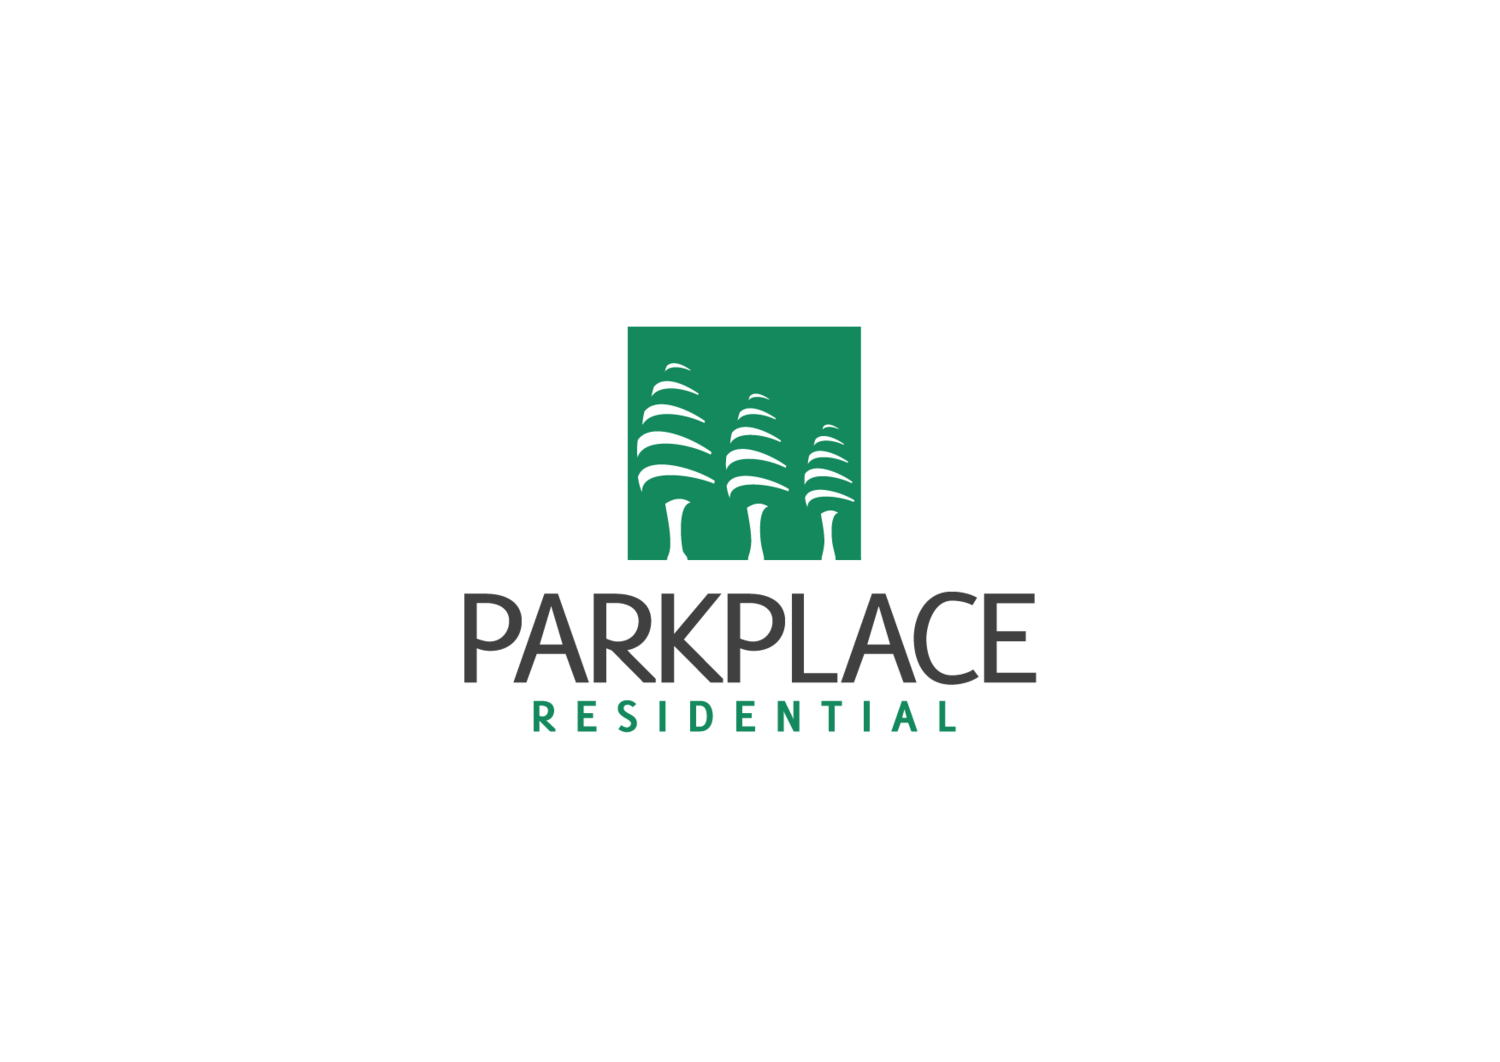 Parkplace Residential Multi-Family Property Management Company